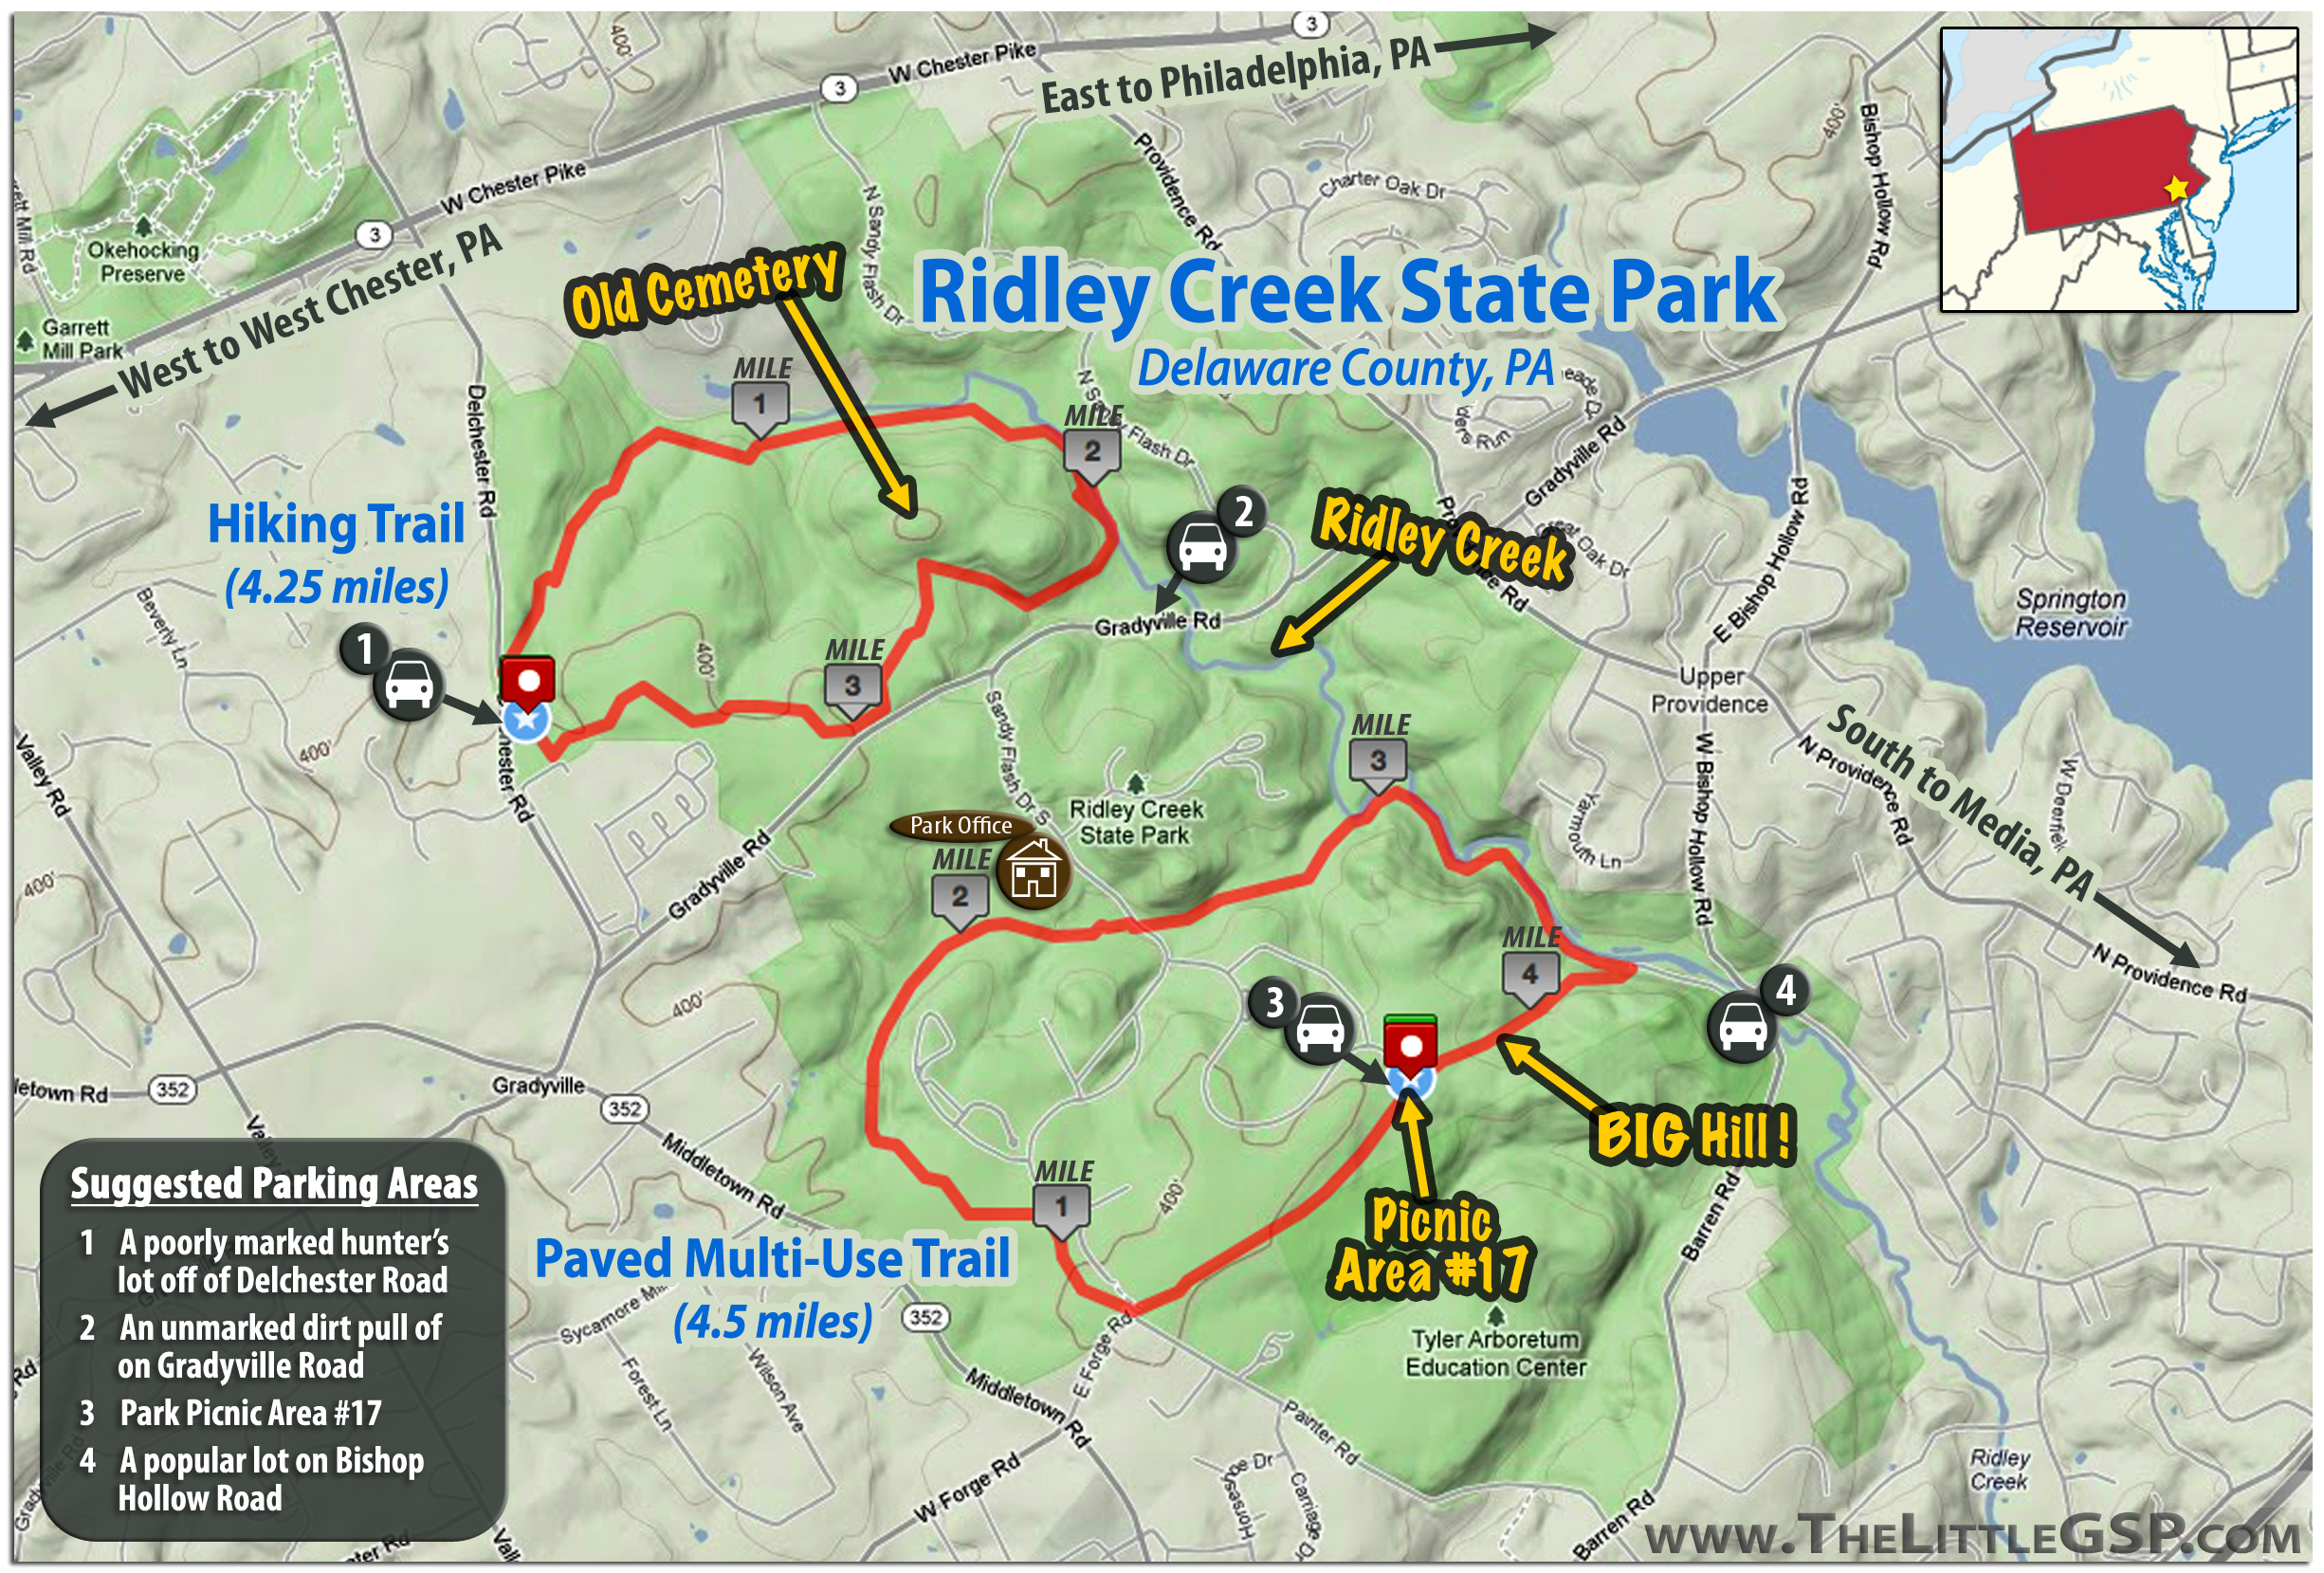 Ridley Creek State Park Map Ridley Creek State Park Map | The Little GSP